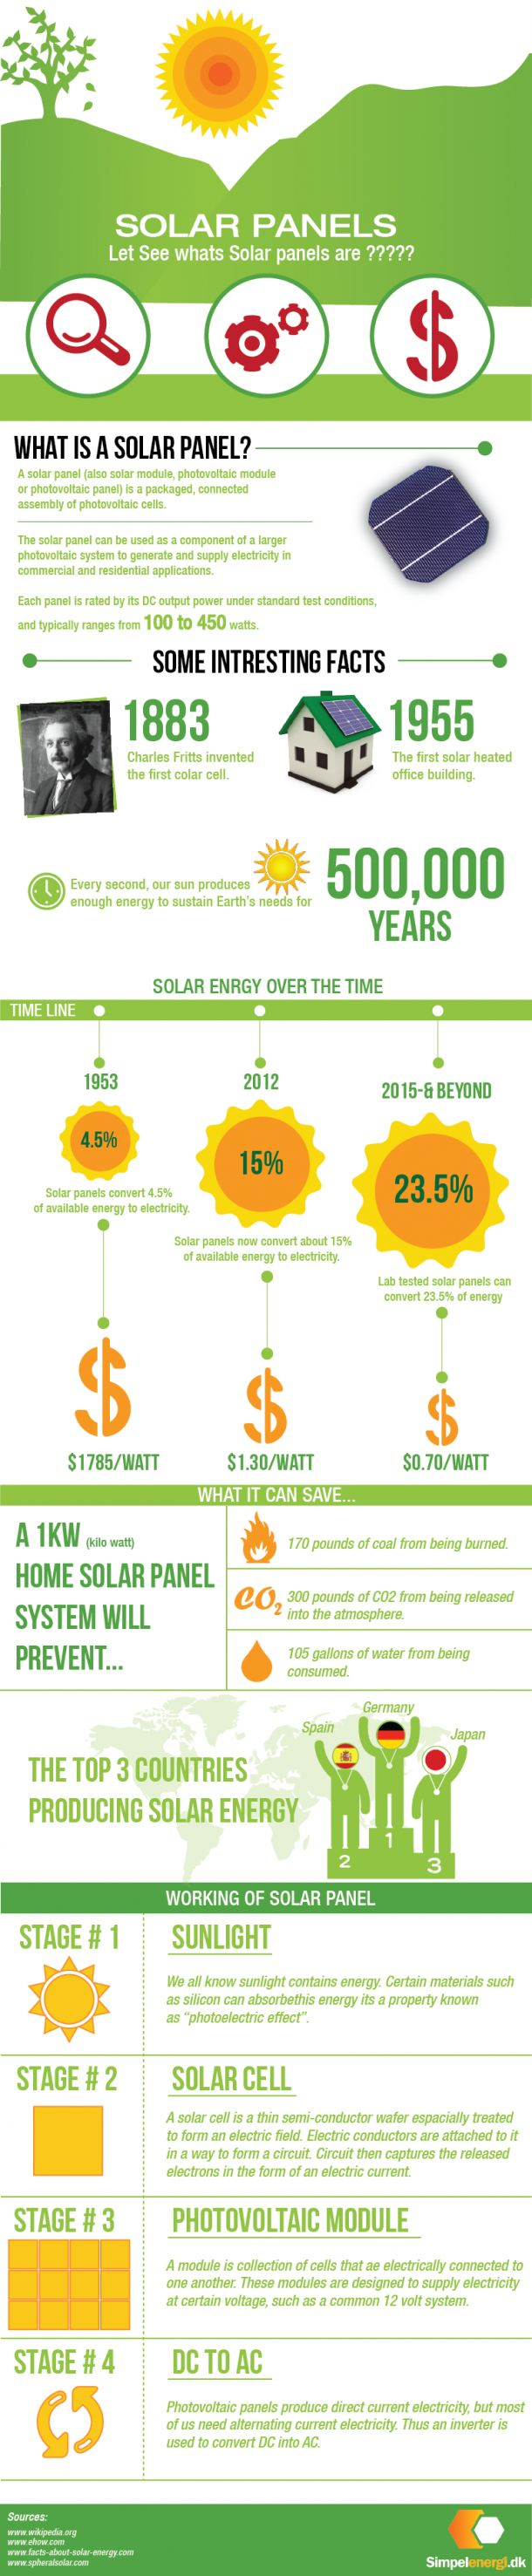 http://theenergysolar.com - Save Money Implementing Renewable Solar Energy  also check out solareworld.com for more info about #solar